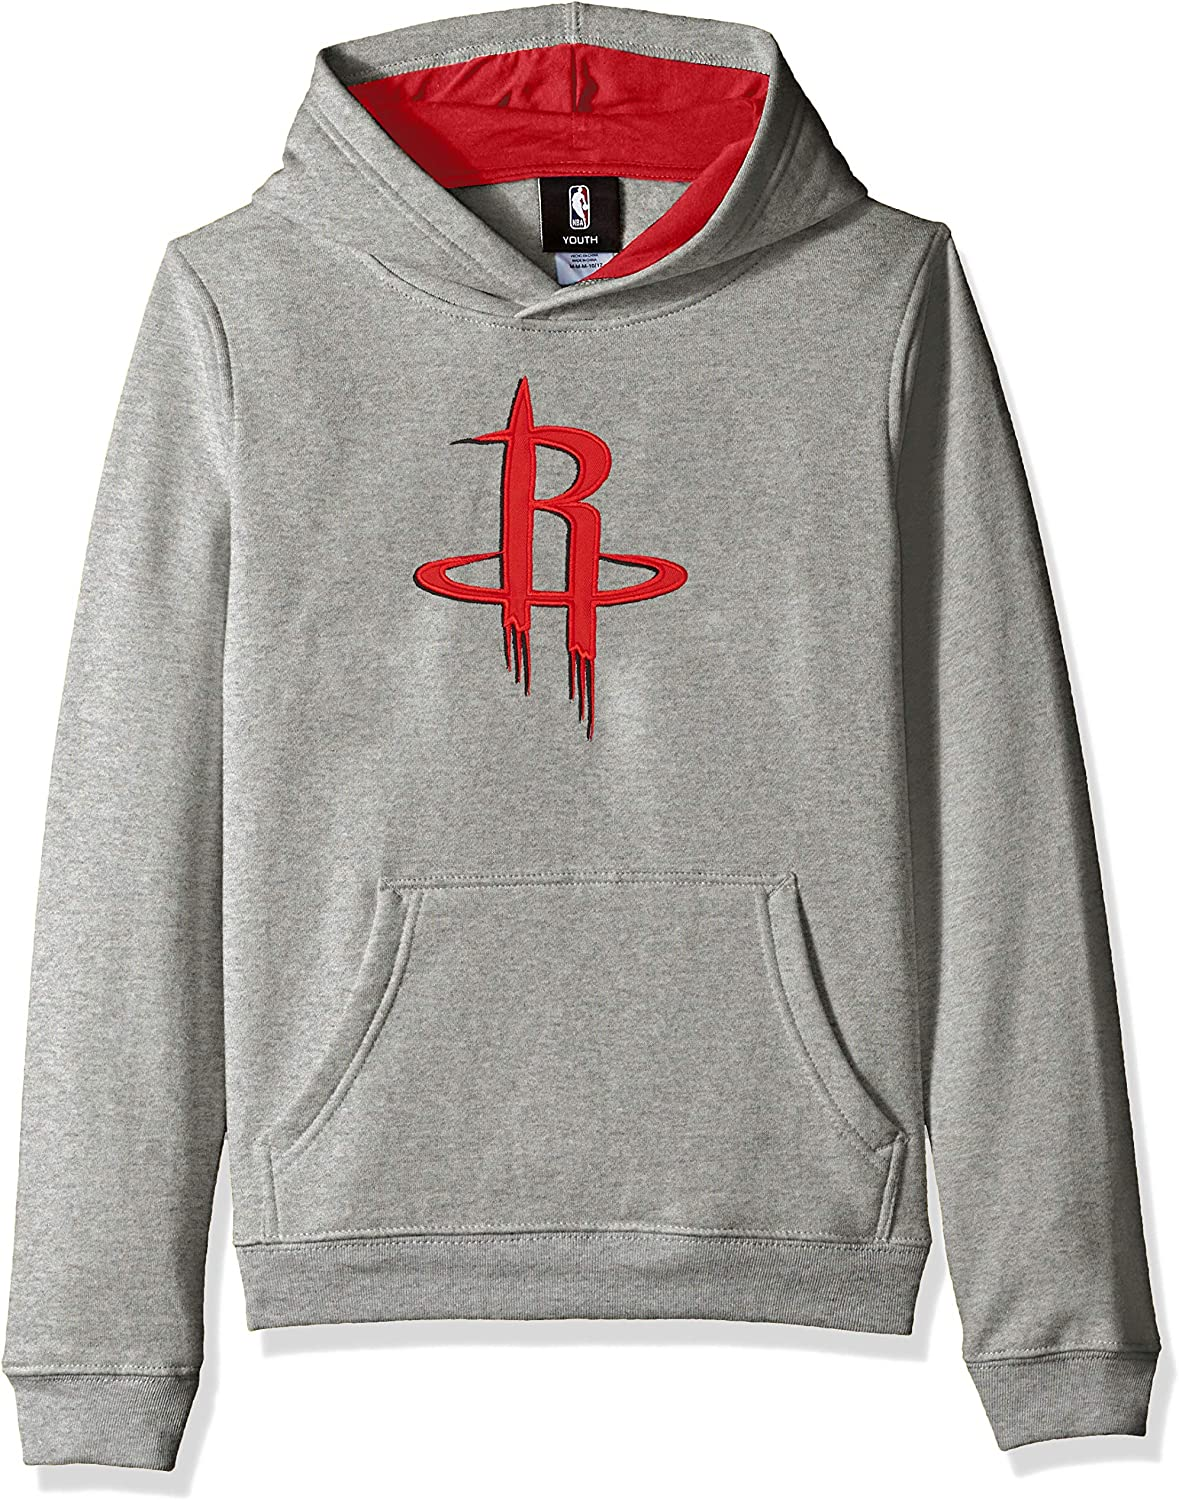 NBA by Outerstuff NBA Kids /& Youth Boys Prime Pullover Fleece Hoodie